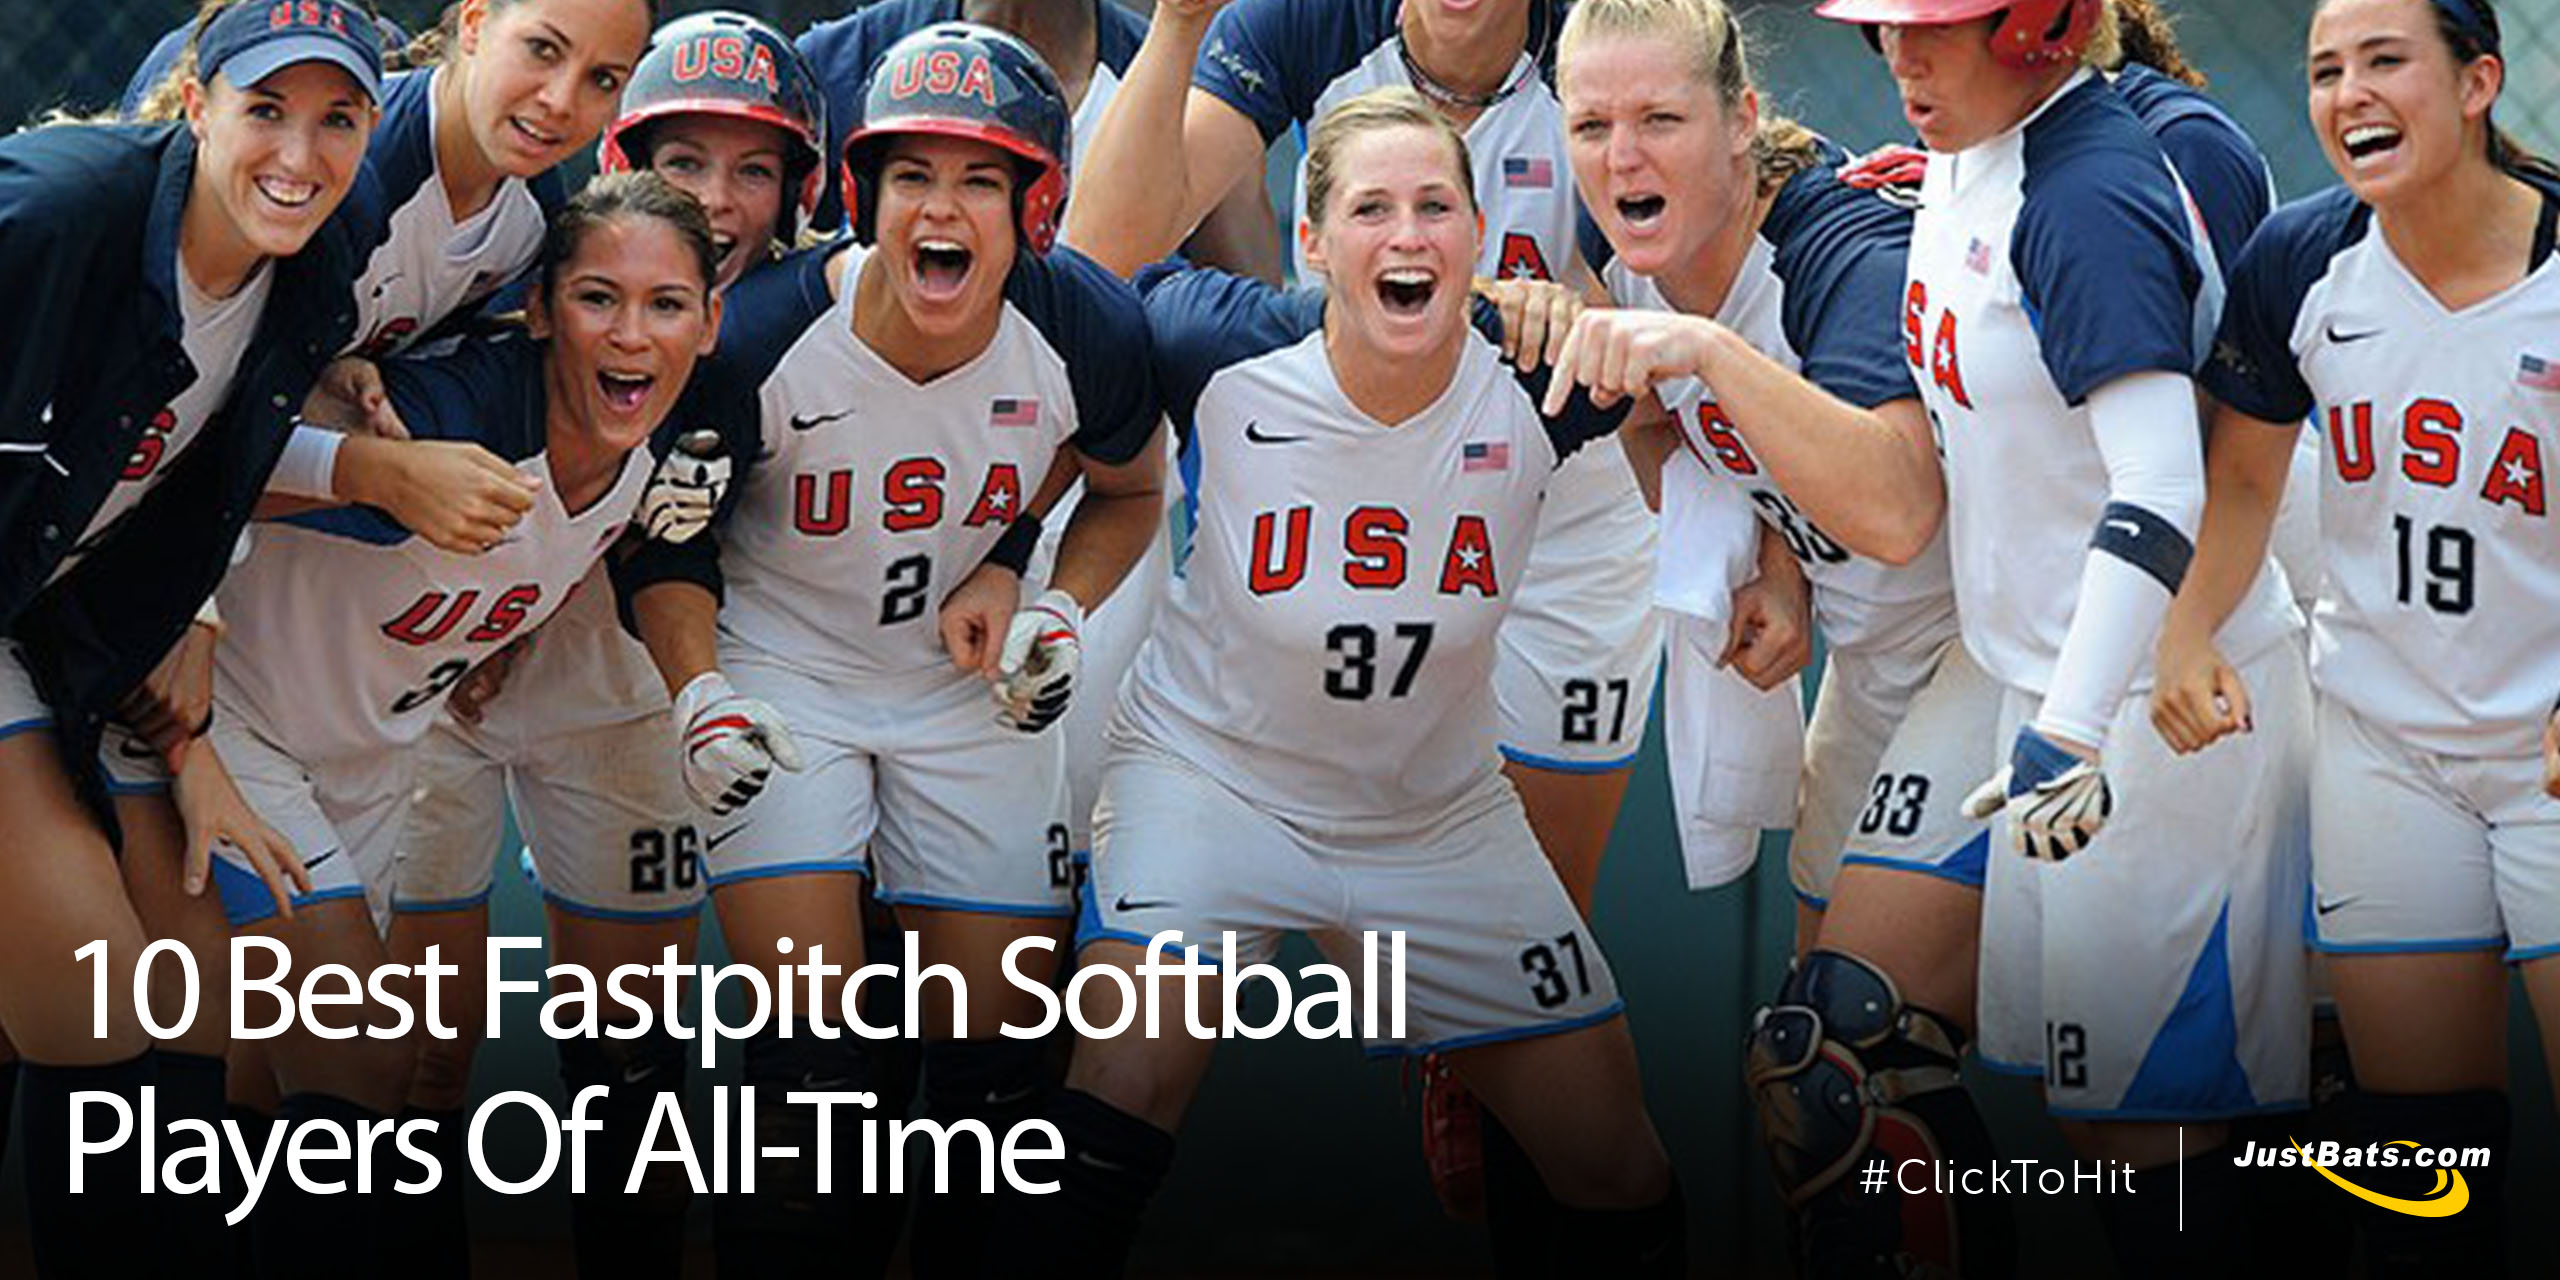 10 Best Fastpitch Players All Time - Blog.jpg